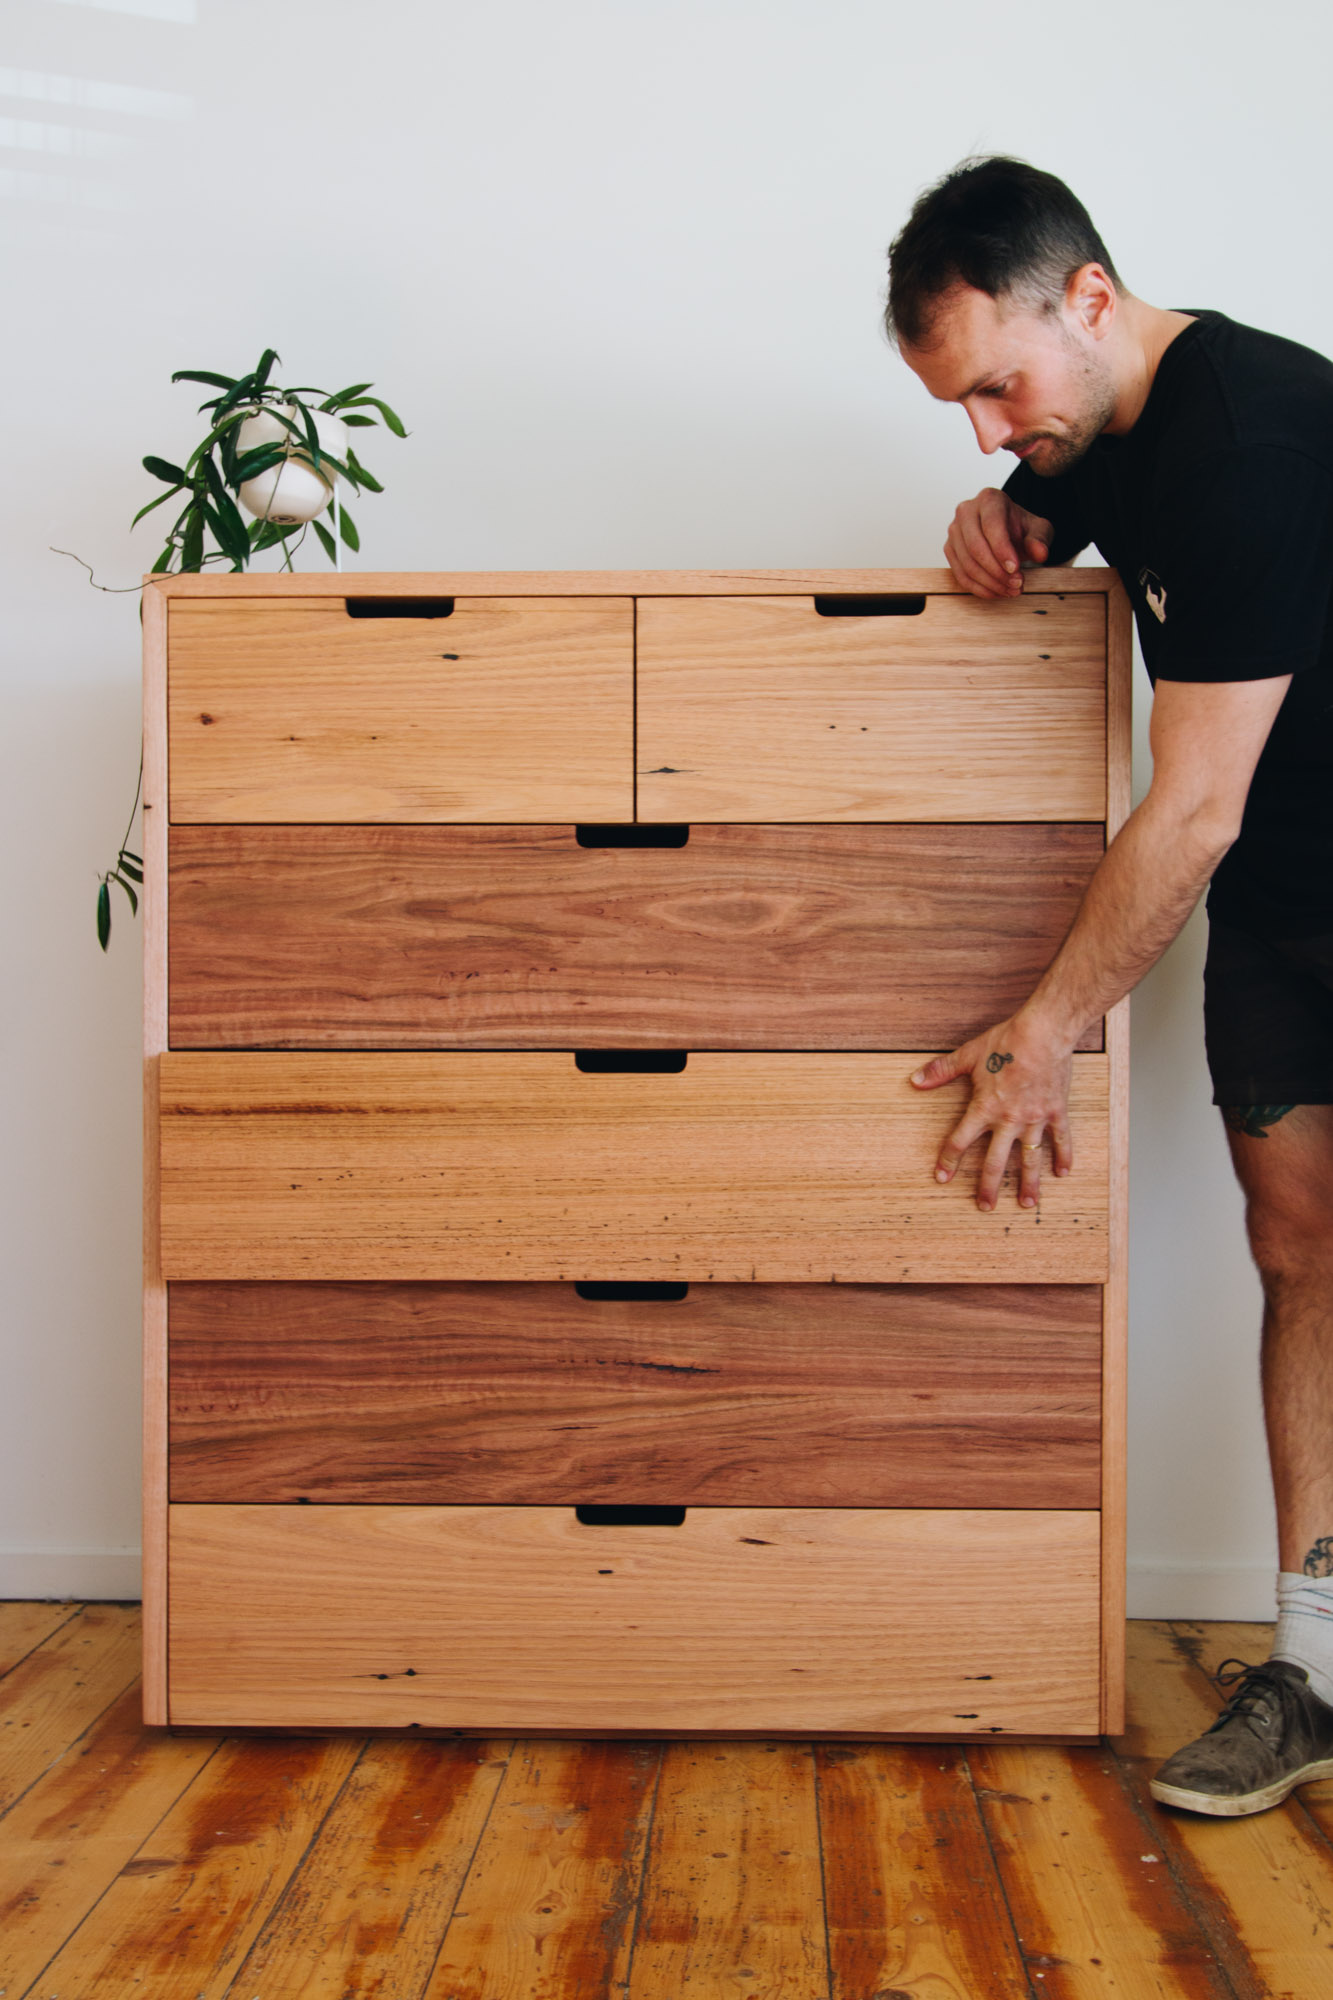 Al and Imo Handmade - Recycled Timber Tallboy - Melbourne - Australia-5.jpg